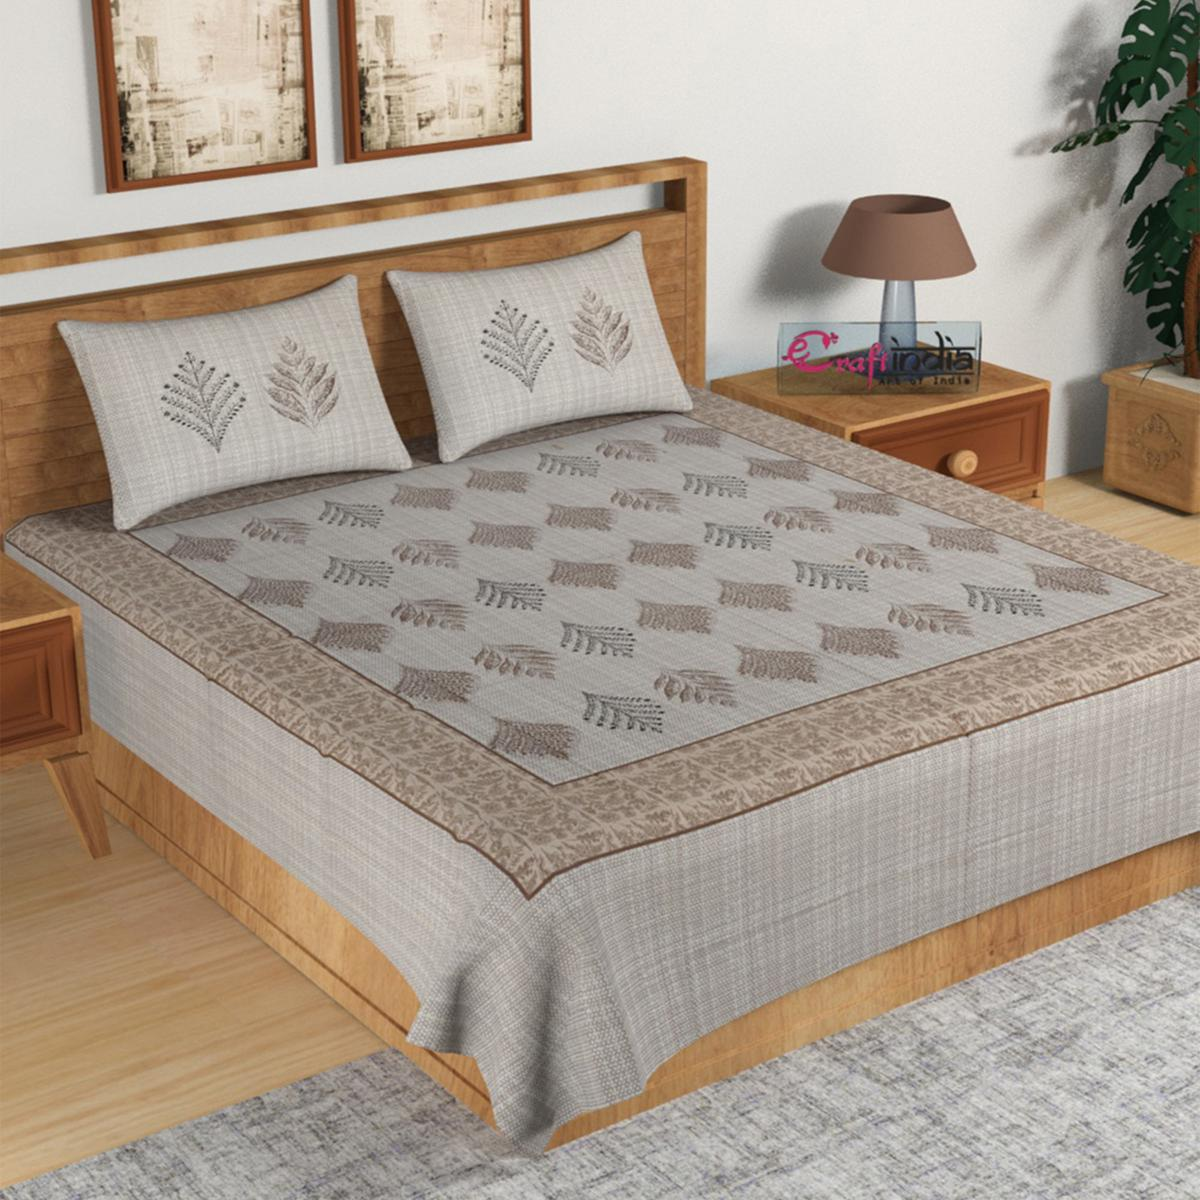 eCraftIndia - 180 TC Pure Cotton Premium Double Bed King Size Leaves Design Bedsheet (100 In x 108 In) with 2 pillow cover - Brown and Grey